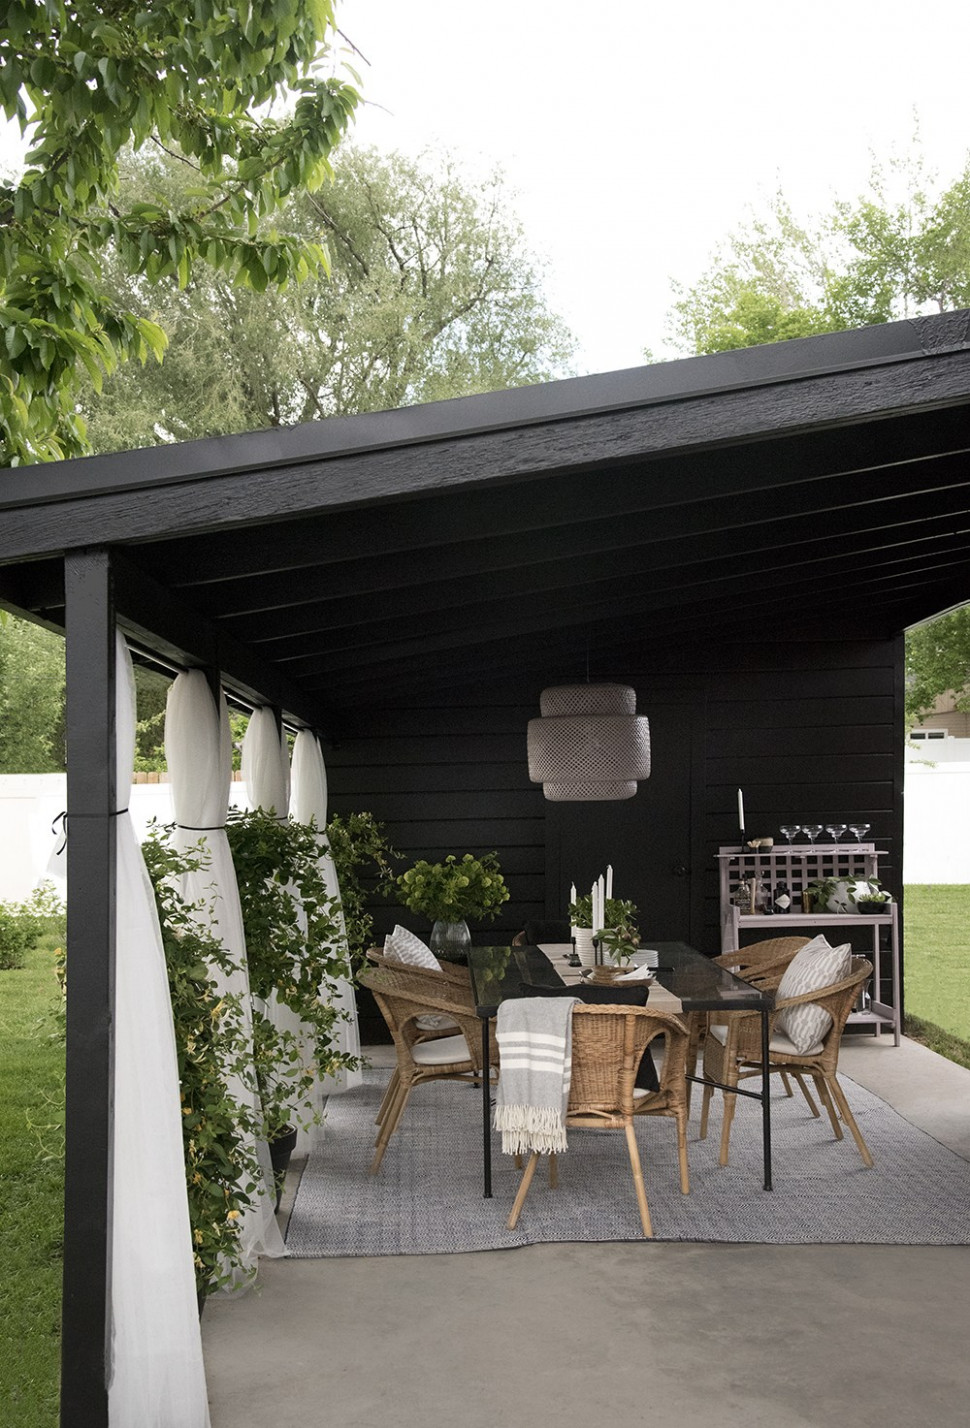 Painted Carport Makeover Room For Tuesday Blog Backyard Carport Ideas